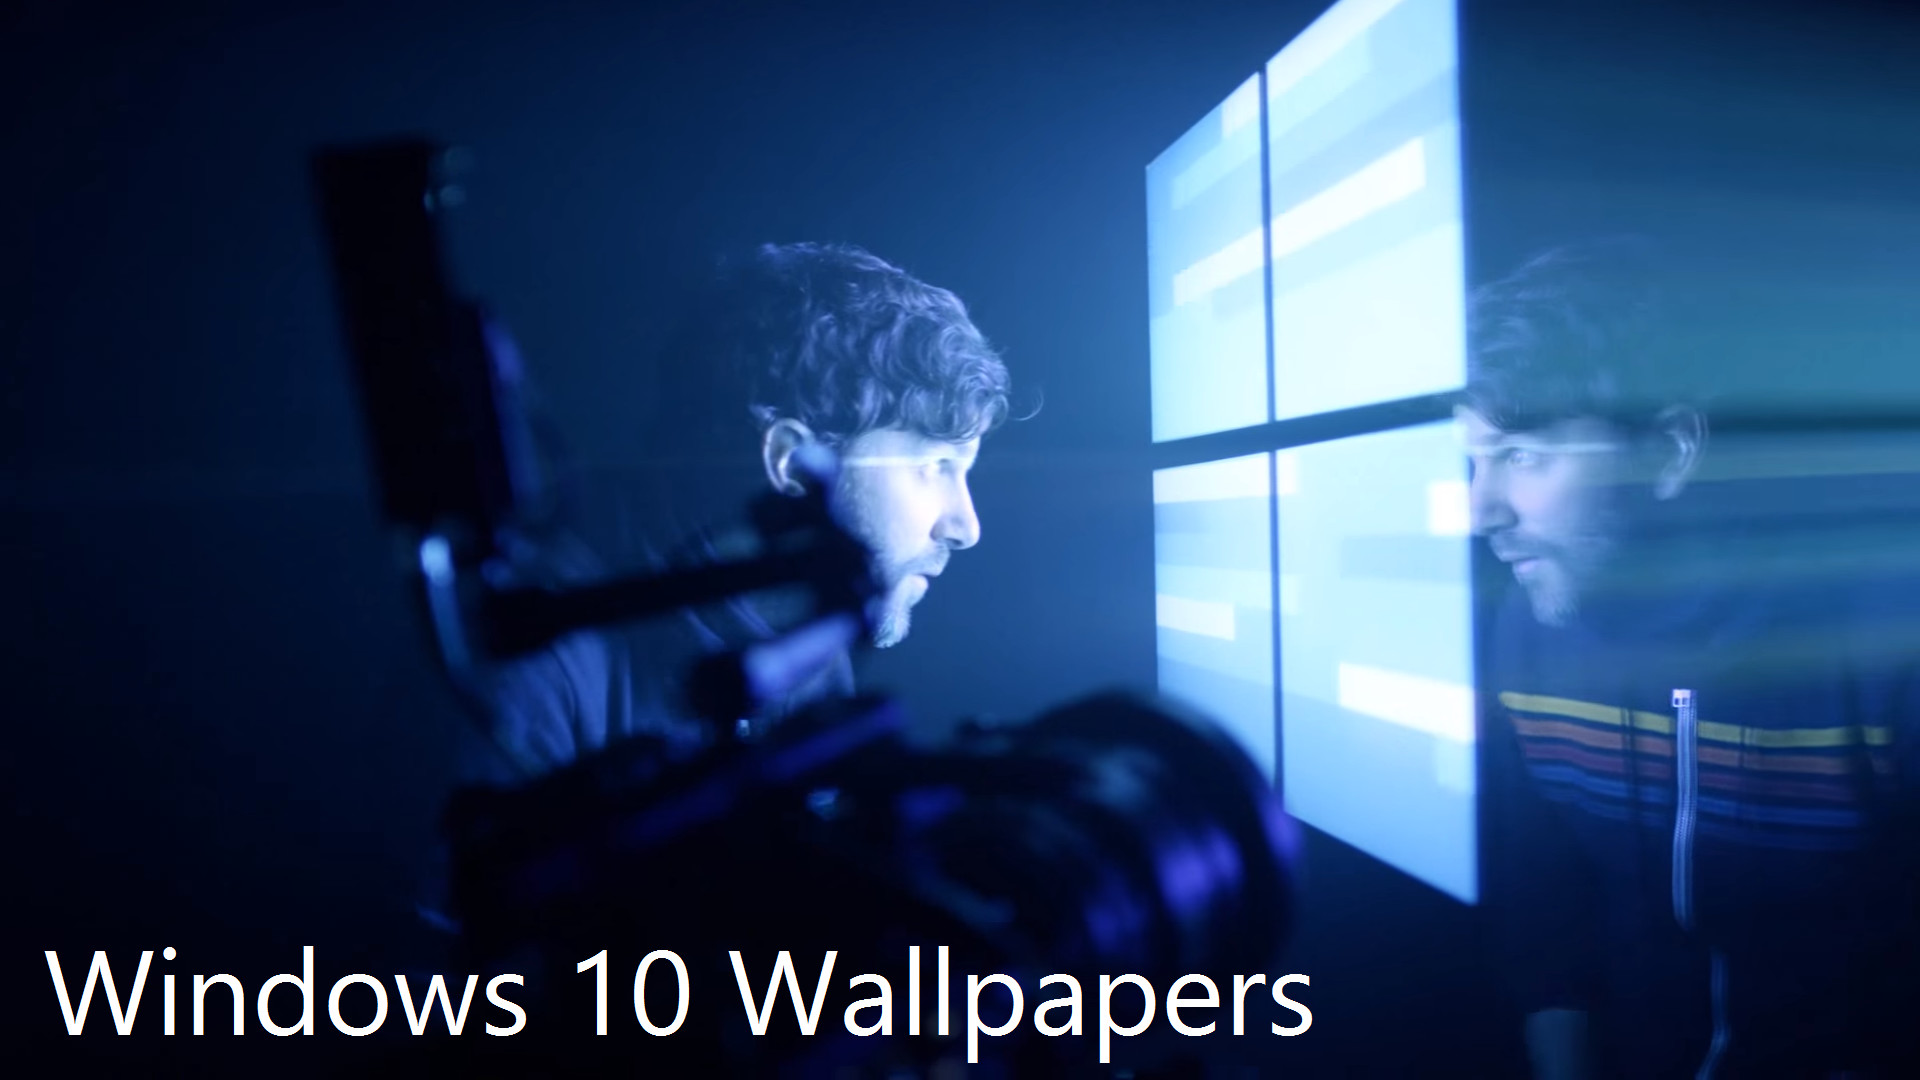 1920x1080 ... Windows 10 Hero Wallpaper Theme by Archi-Techi